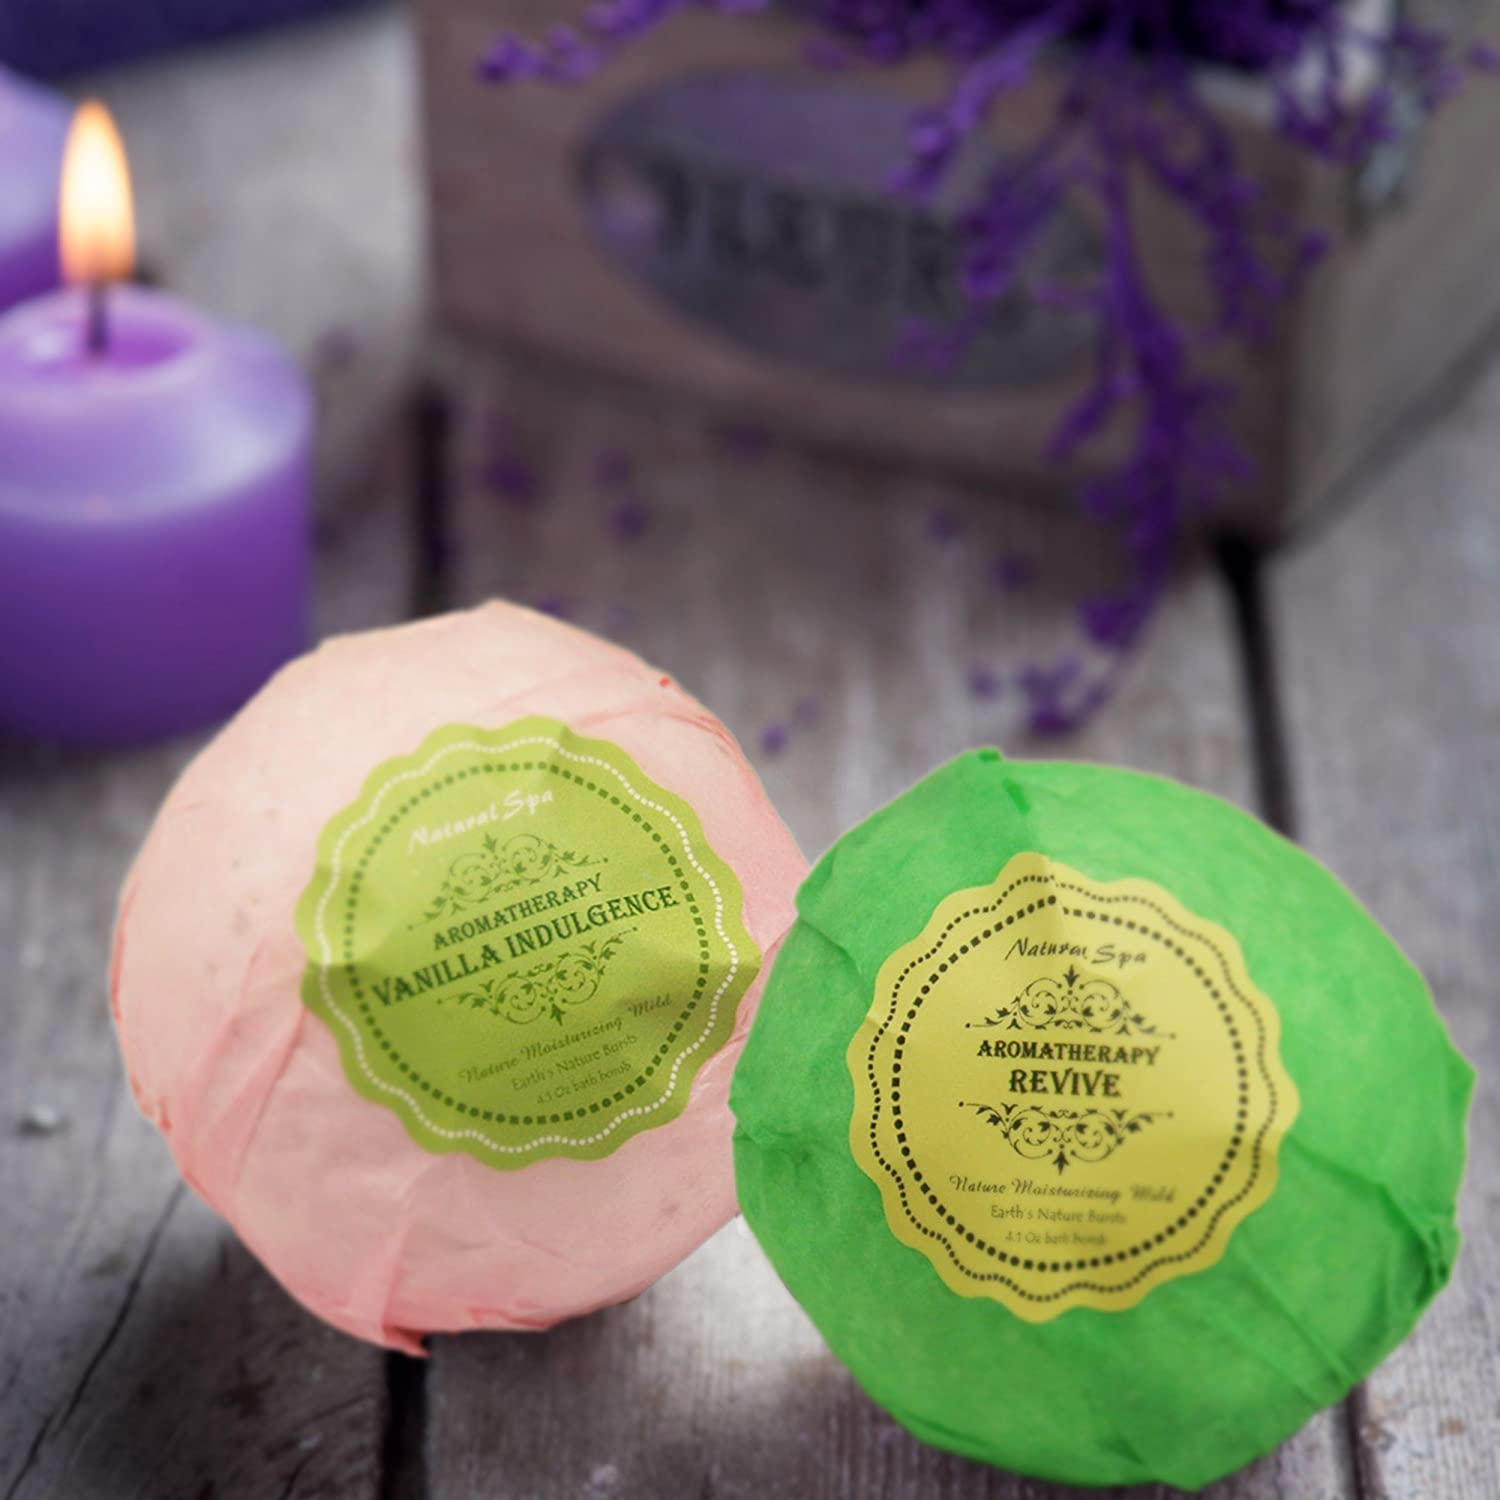 Bath Bombs Ultra Lux Gift Set - 6 XXL Fizzies with Natural Dead Sea Salt Cocoa and Shea Essential Oils - Best Gift Idea for Birthday, Mom, Girl, Him, Kids - Add to Bath Basket: Health & Personal Care